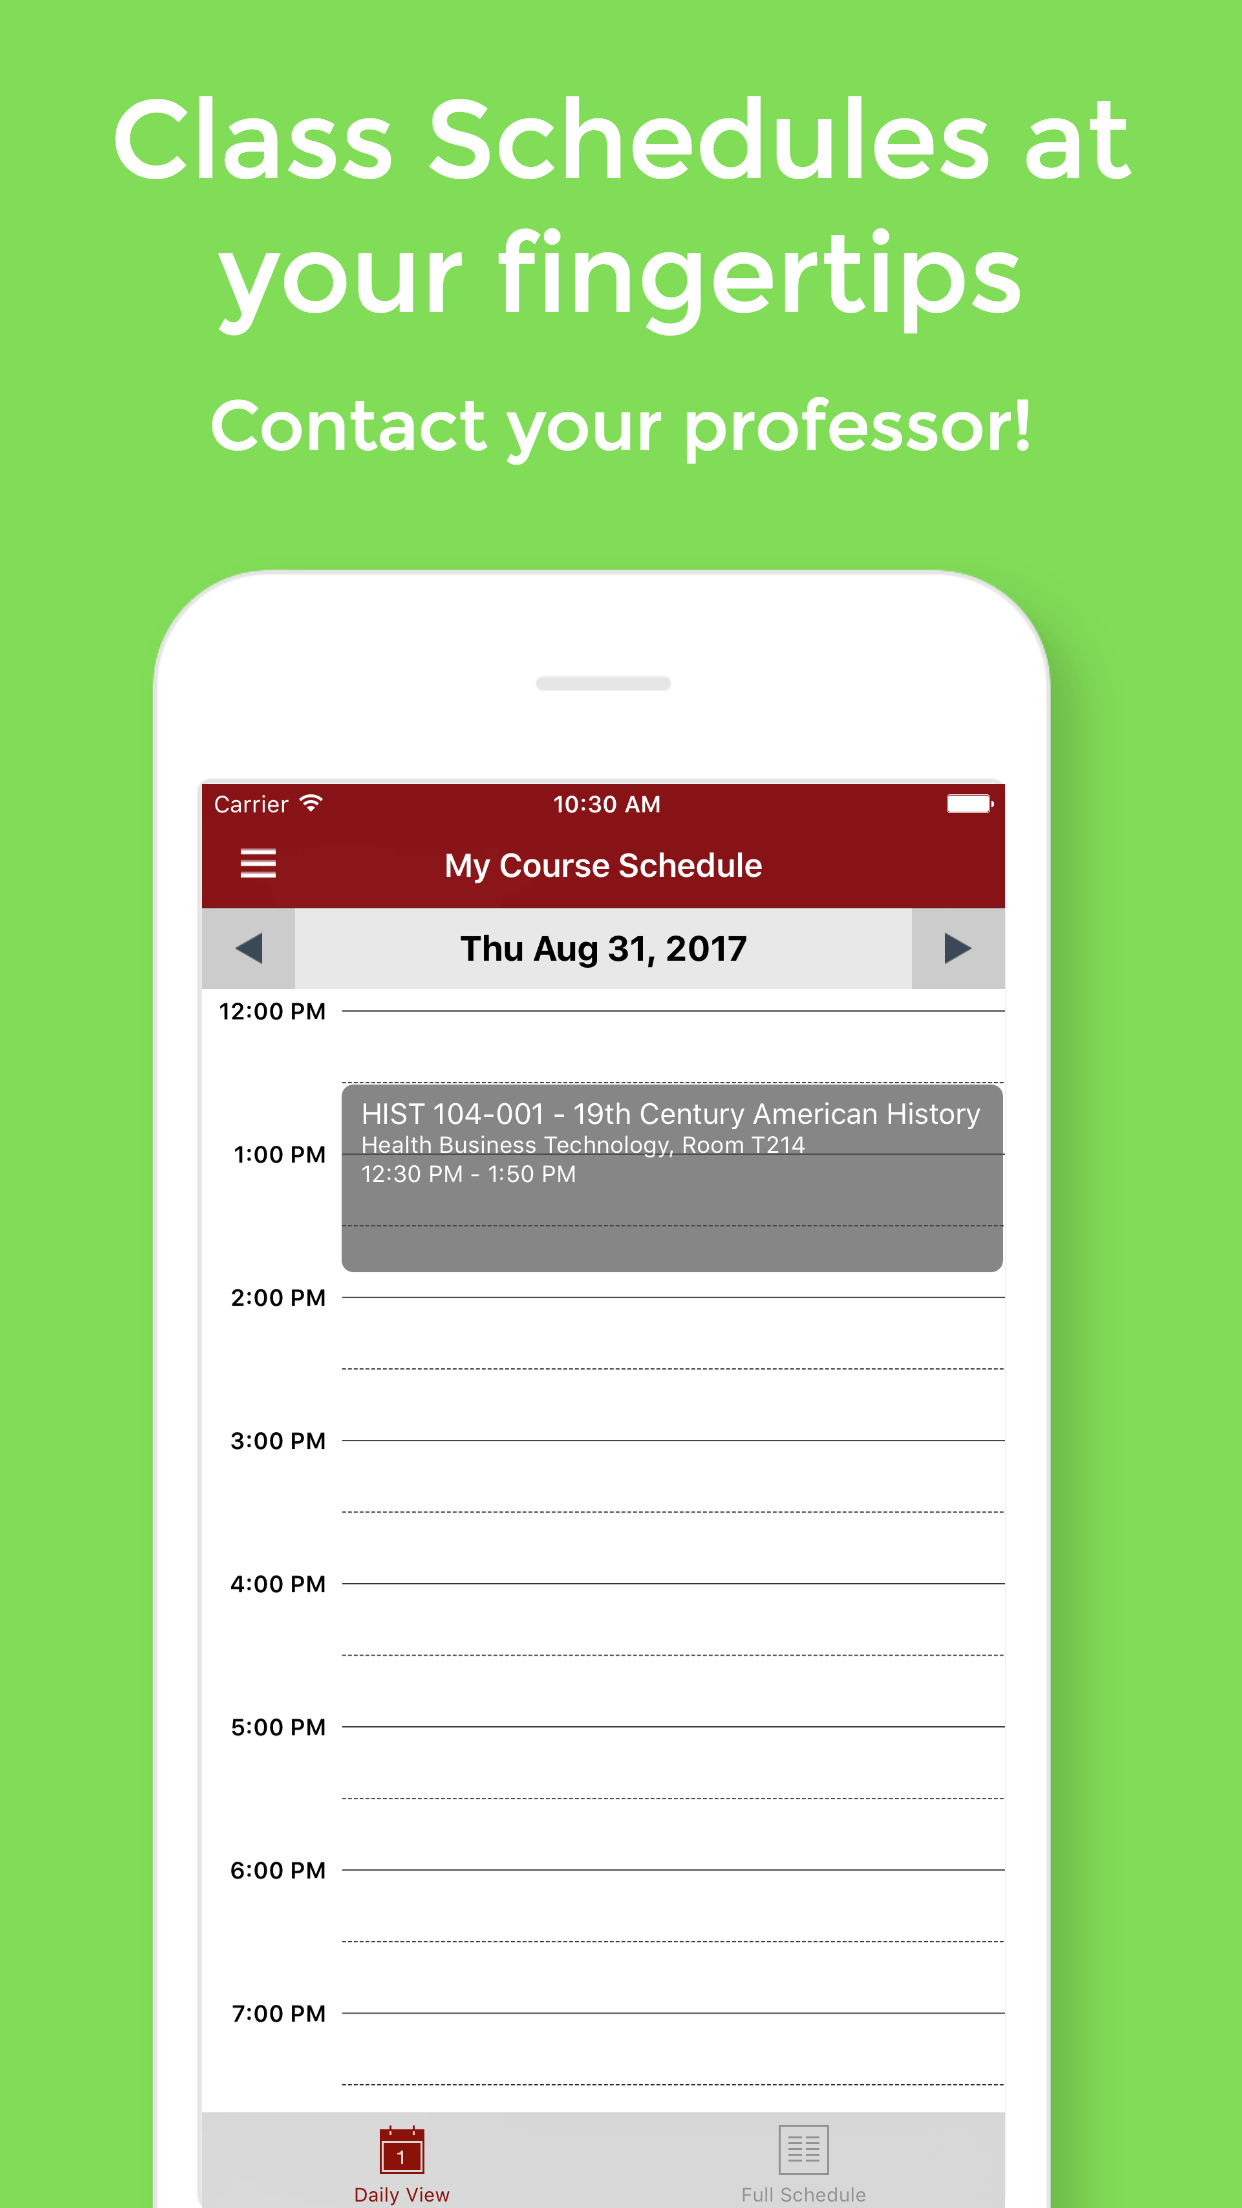 Class schedules at your fingertips, and easily contact your professors